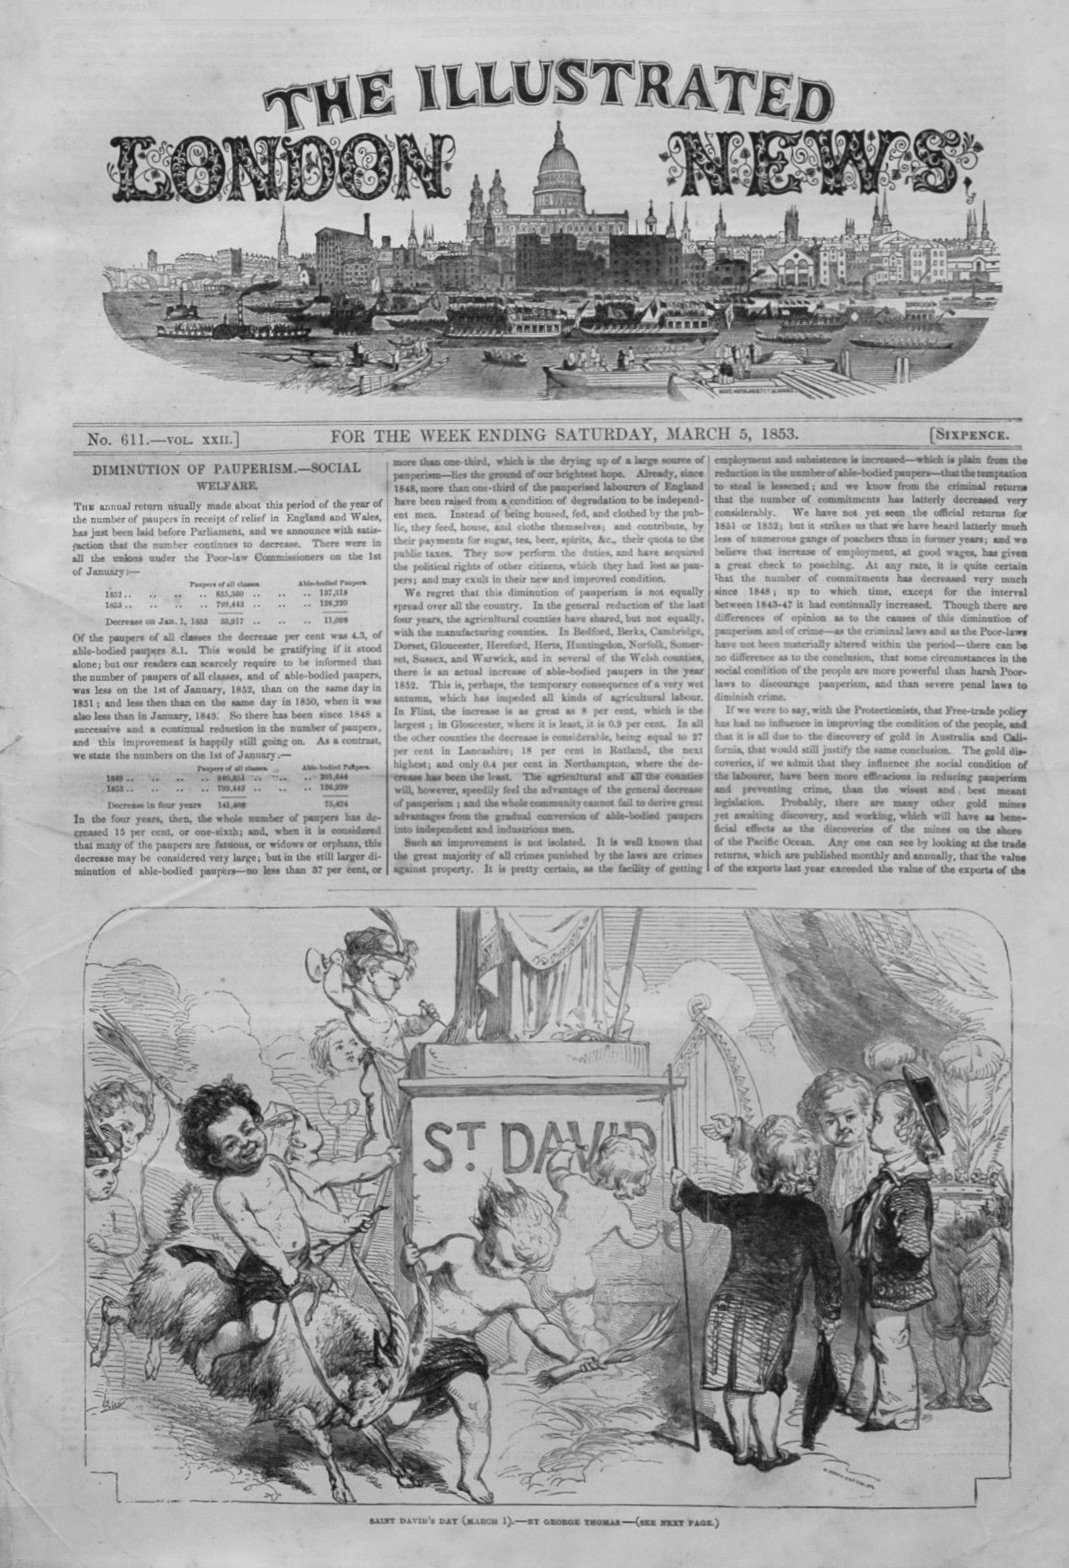 Illustrated London News March 5th 1853.